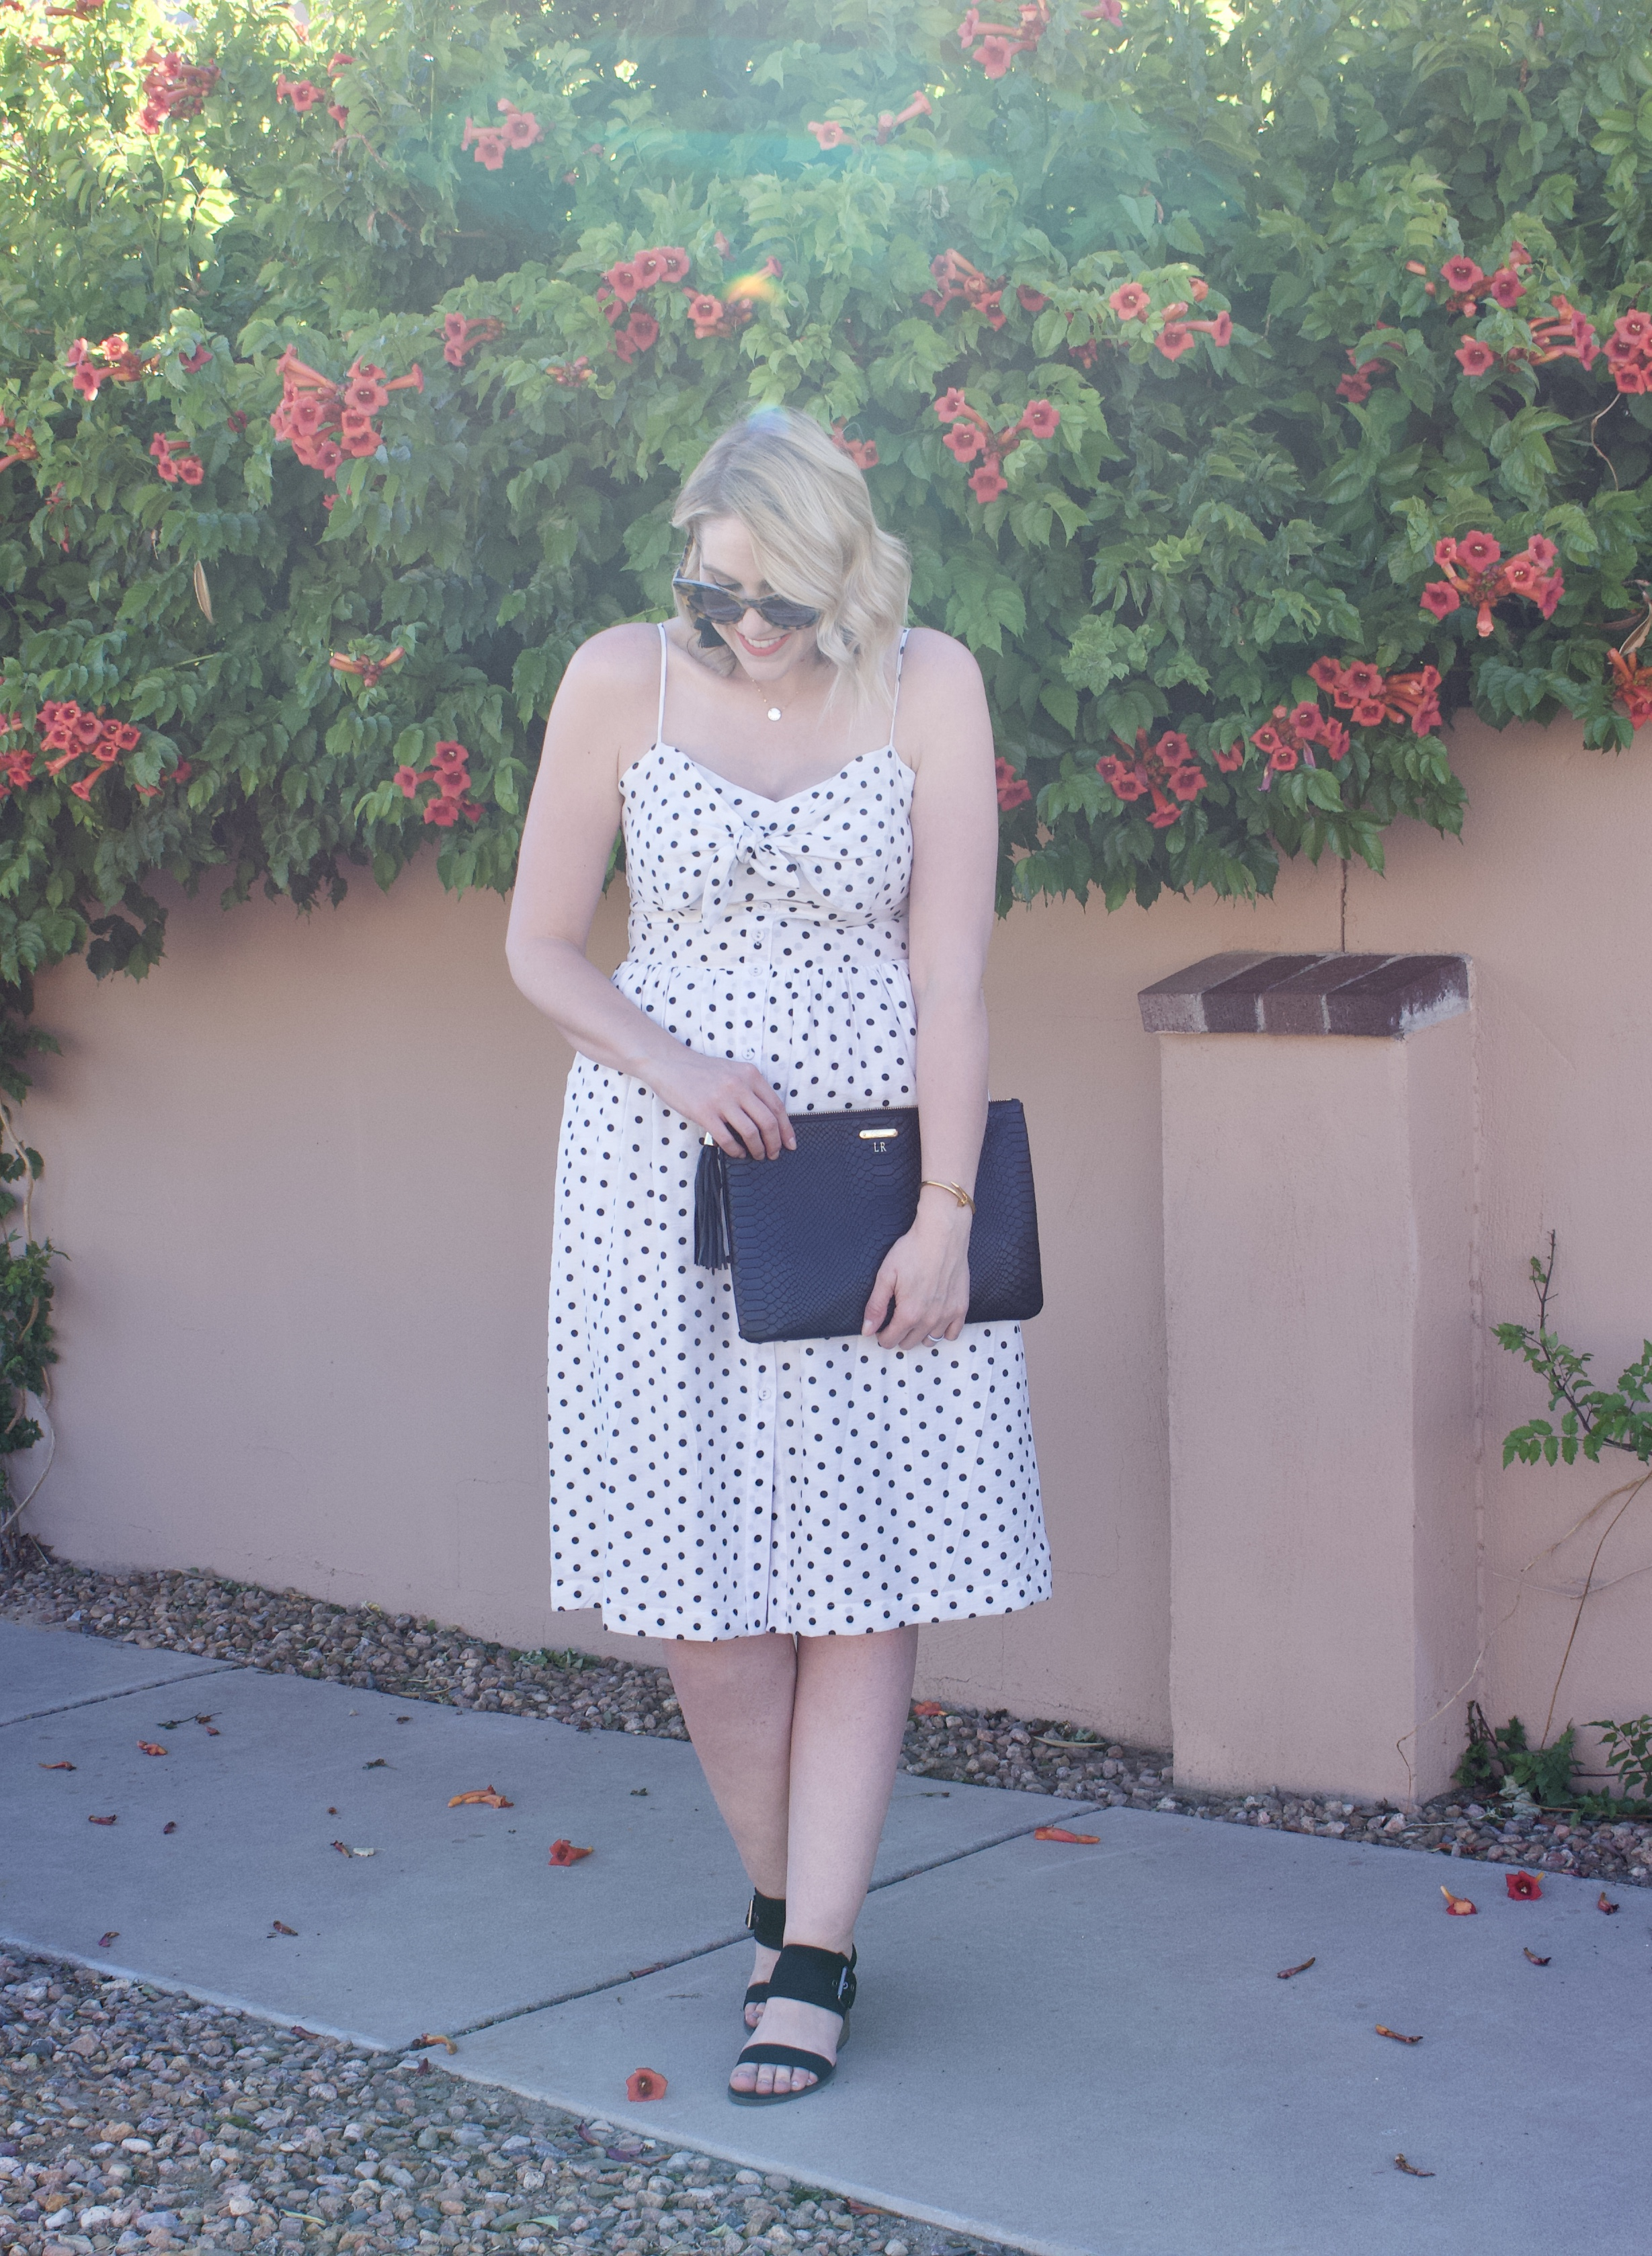 polka dot midi dress date night style #datenight #mididress #fashionlinkup #fashionblogger